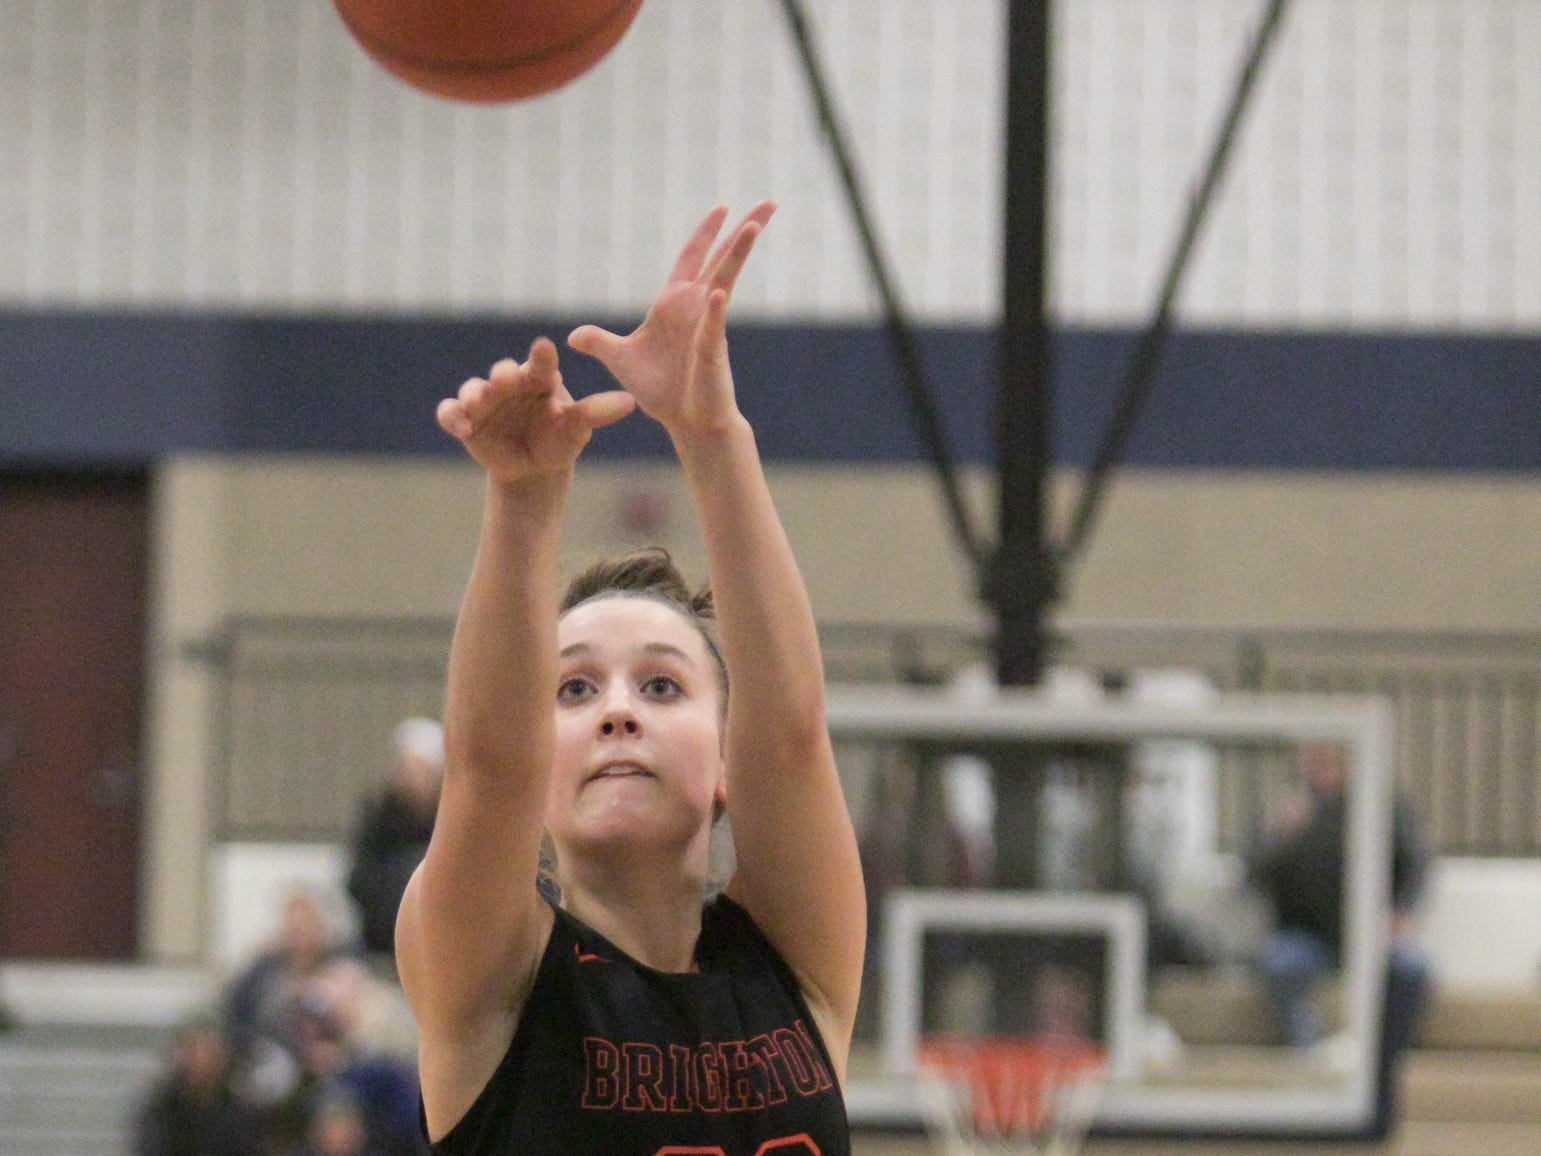 Lauren Brown of Brighton makes good on two free-throws in the second period of the game at Hartland Friday, Feb. 8, 2019.